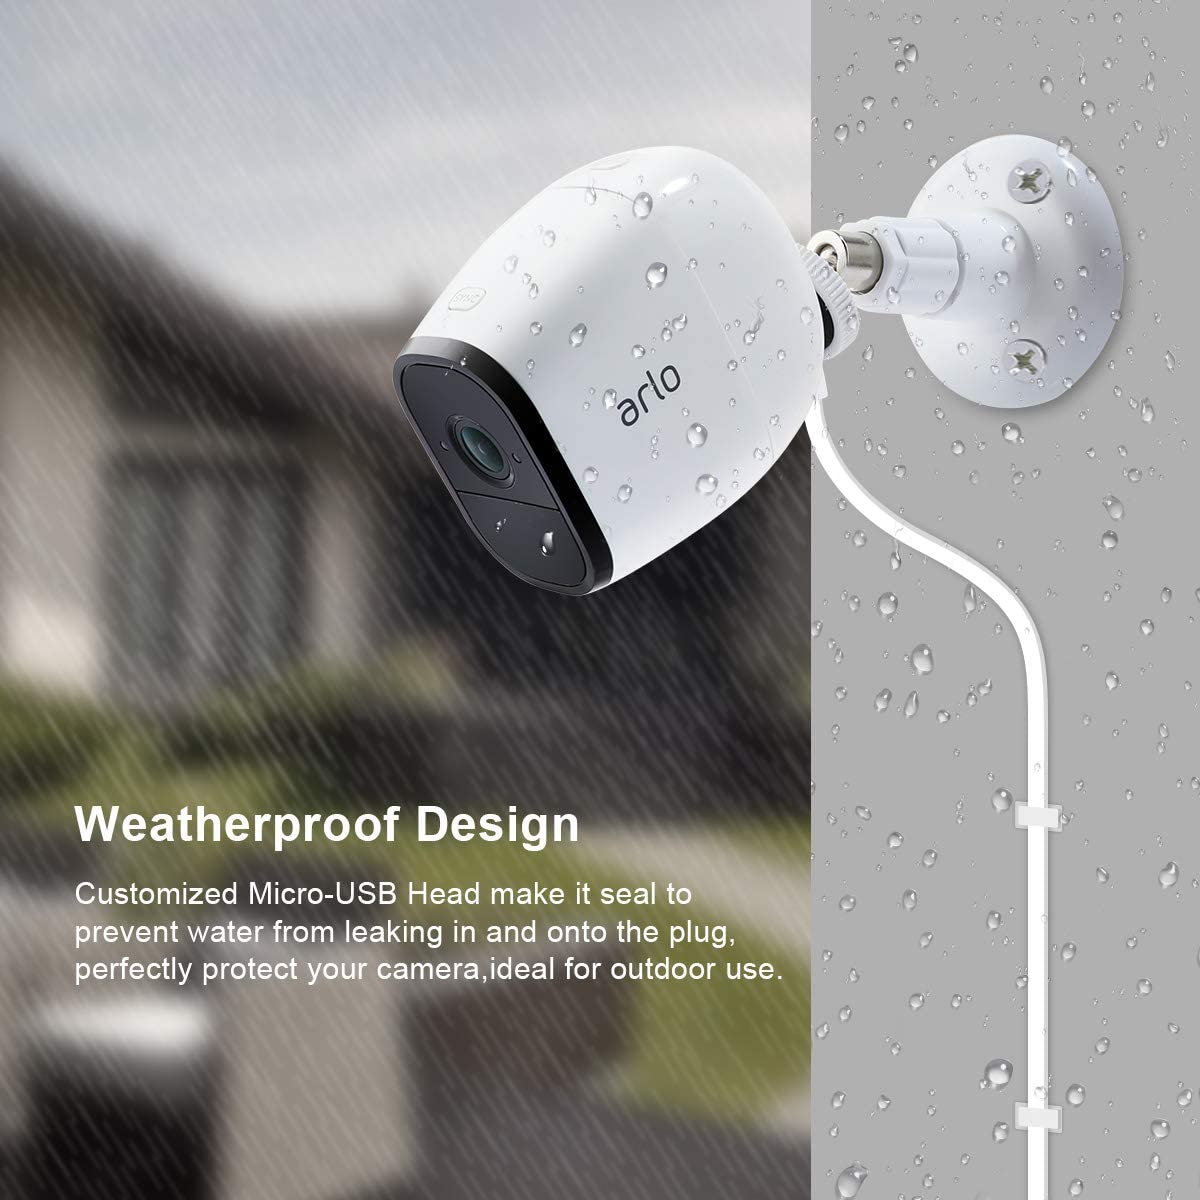 White LANMU 26ft Weatherproof Outdoor Flat Power Cable for NETGEAR Arlo Pro,Arlo Pro 2,Arlo Go and Arlo Security Light,Micro USB Charging Cord Compatible with Arlo Pro Camera with Wire Clips